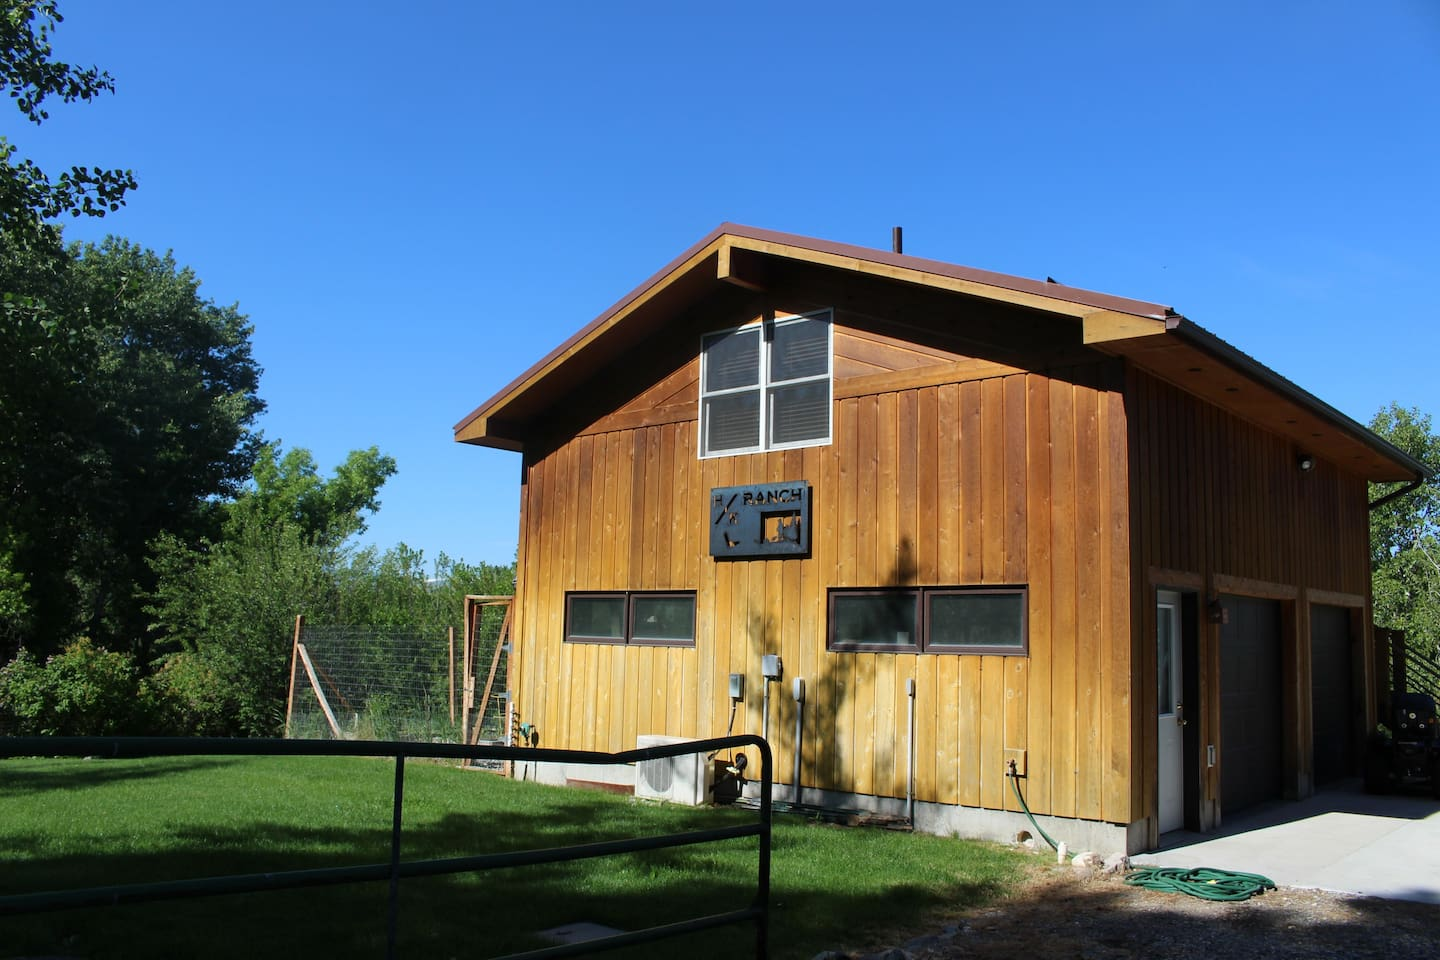 Charming BigTimber guesthouse overlooking the Boulder River!